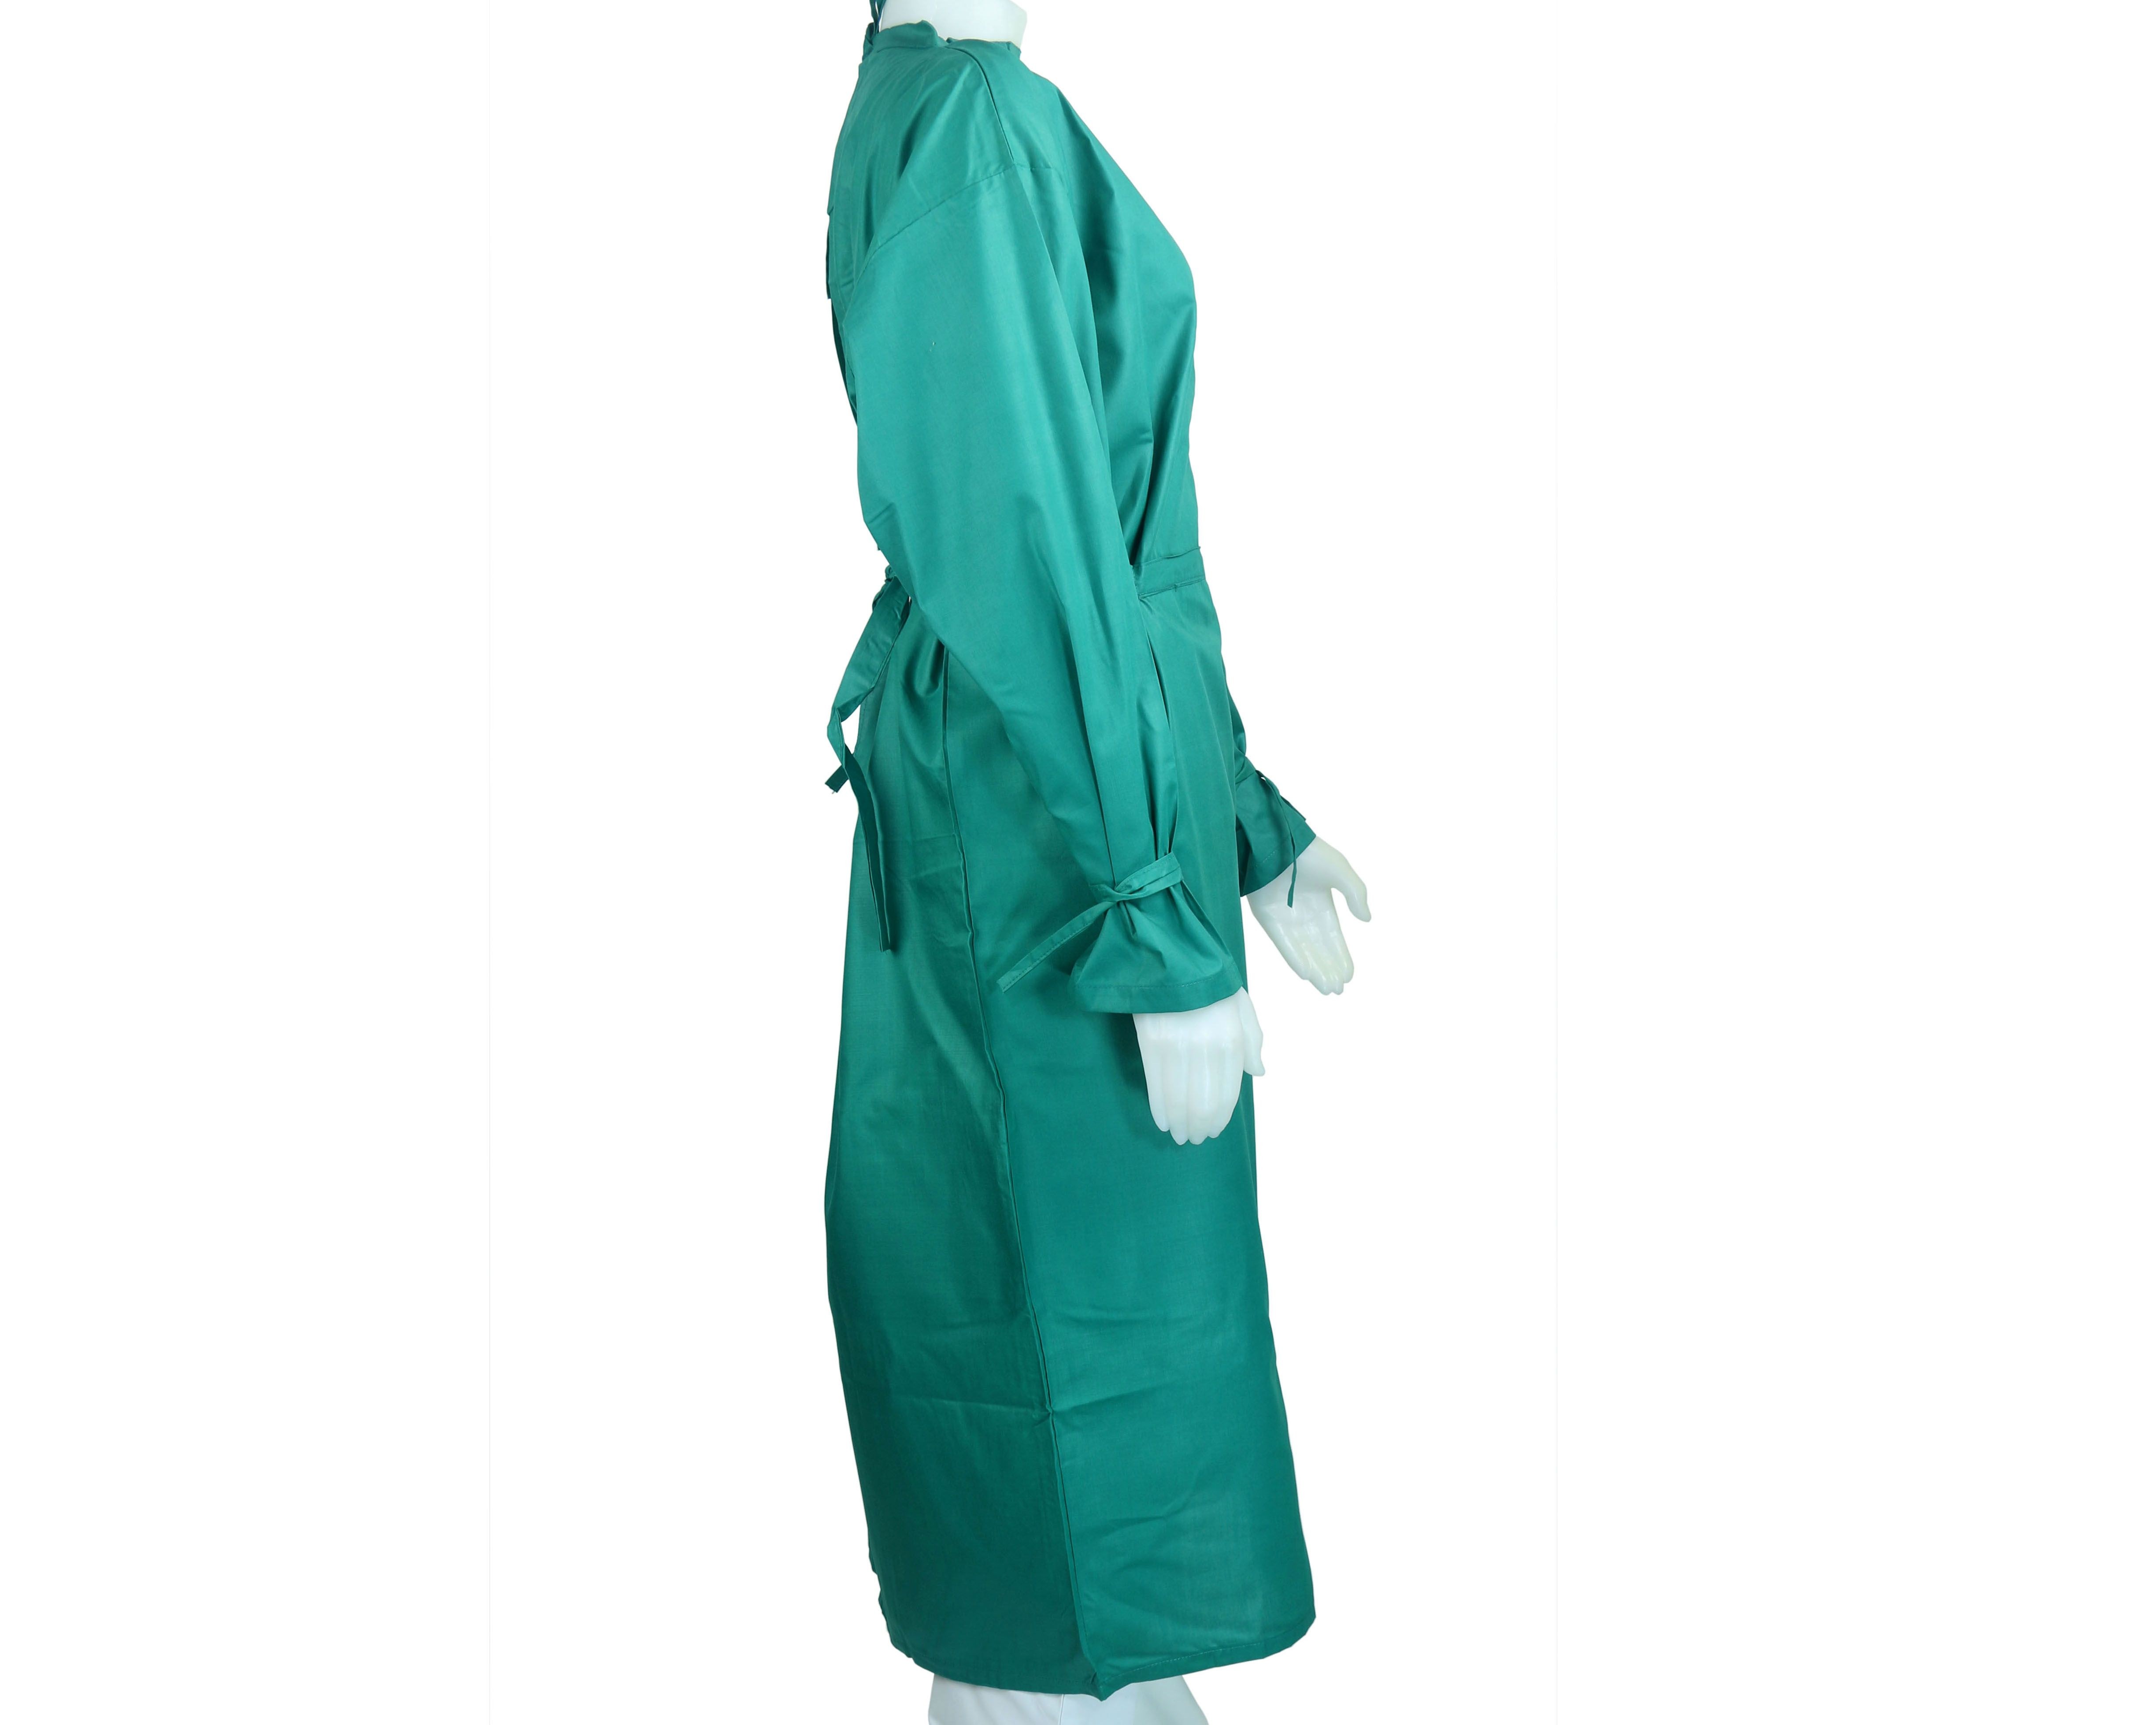 Whilst protection is paramount in selecting surgical gowns, comfort ...